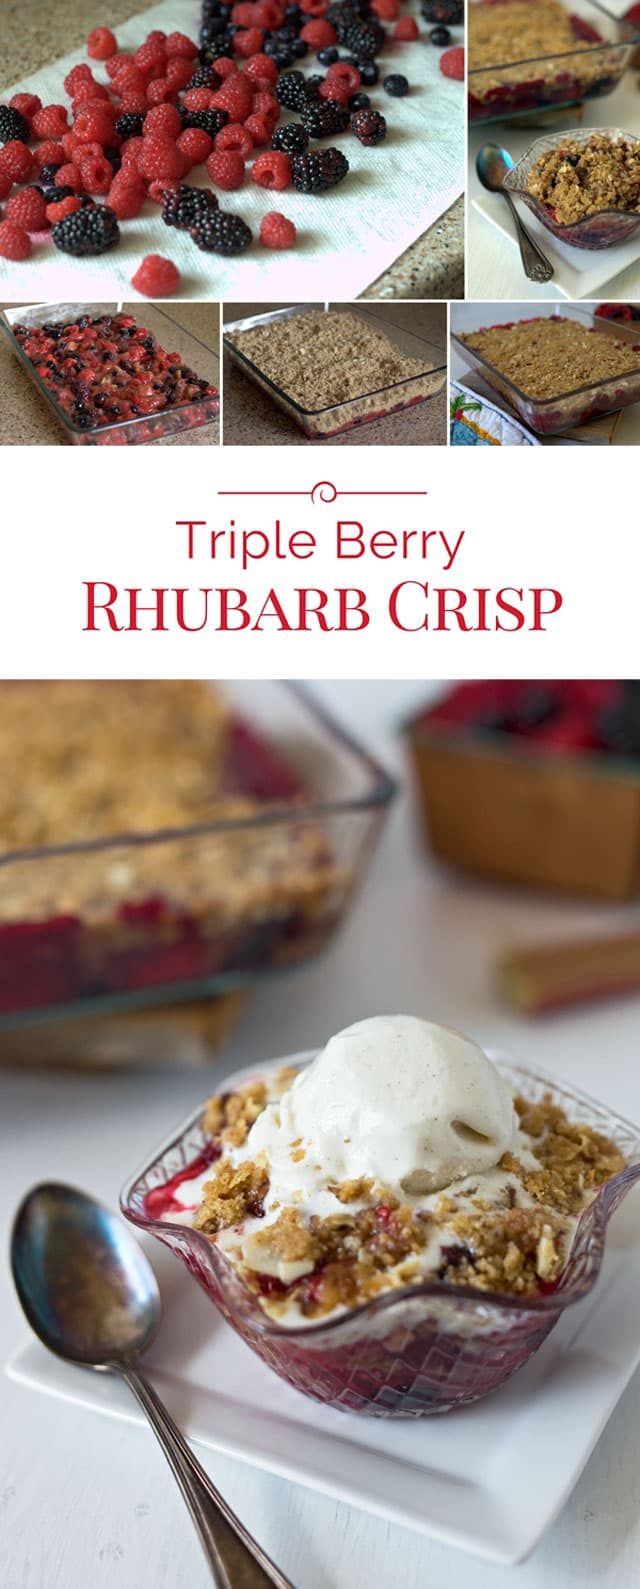 Sweet berries and tart rhubarb baked with a crisp almond, oat streusel topping, served piping hot with a scoop of vanilla ice cream.